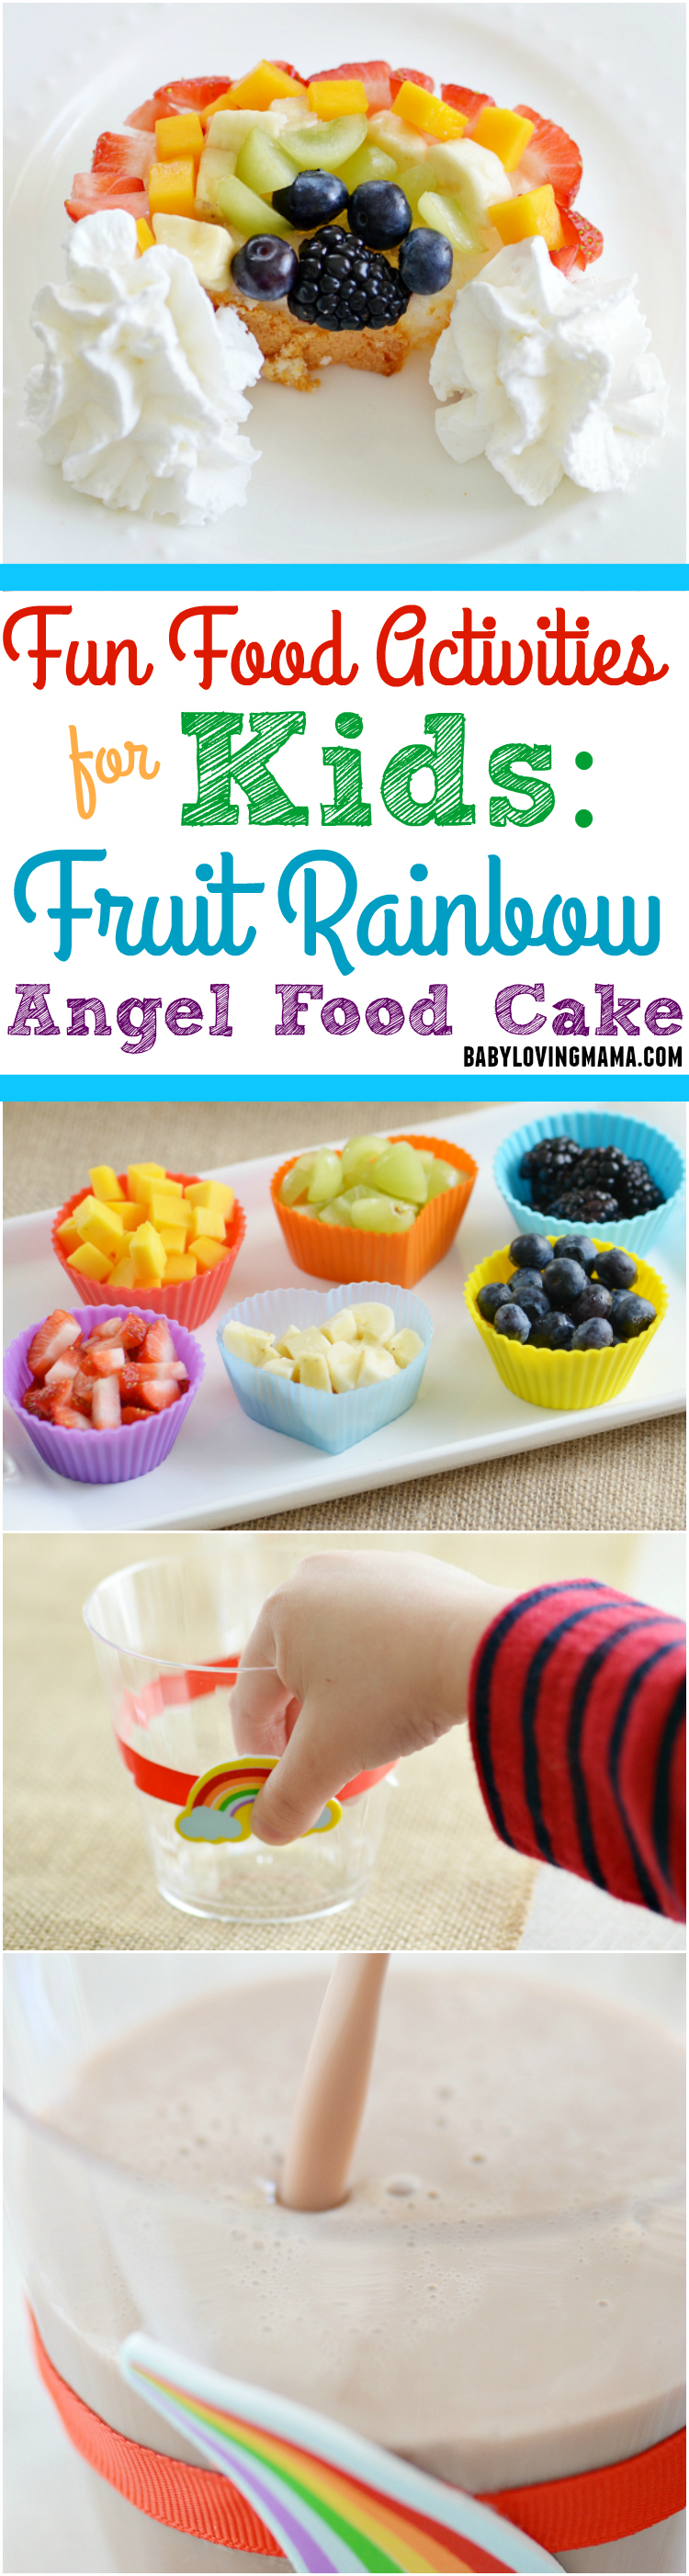 Fun Food Activities for Kids Fruit Rainbow Angel Food Cake